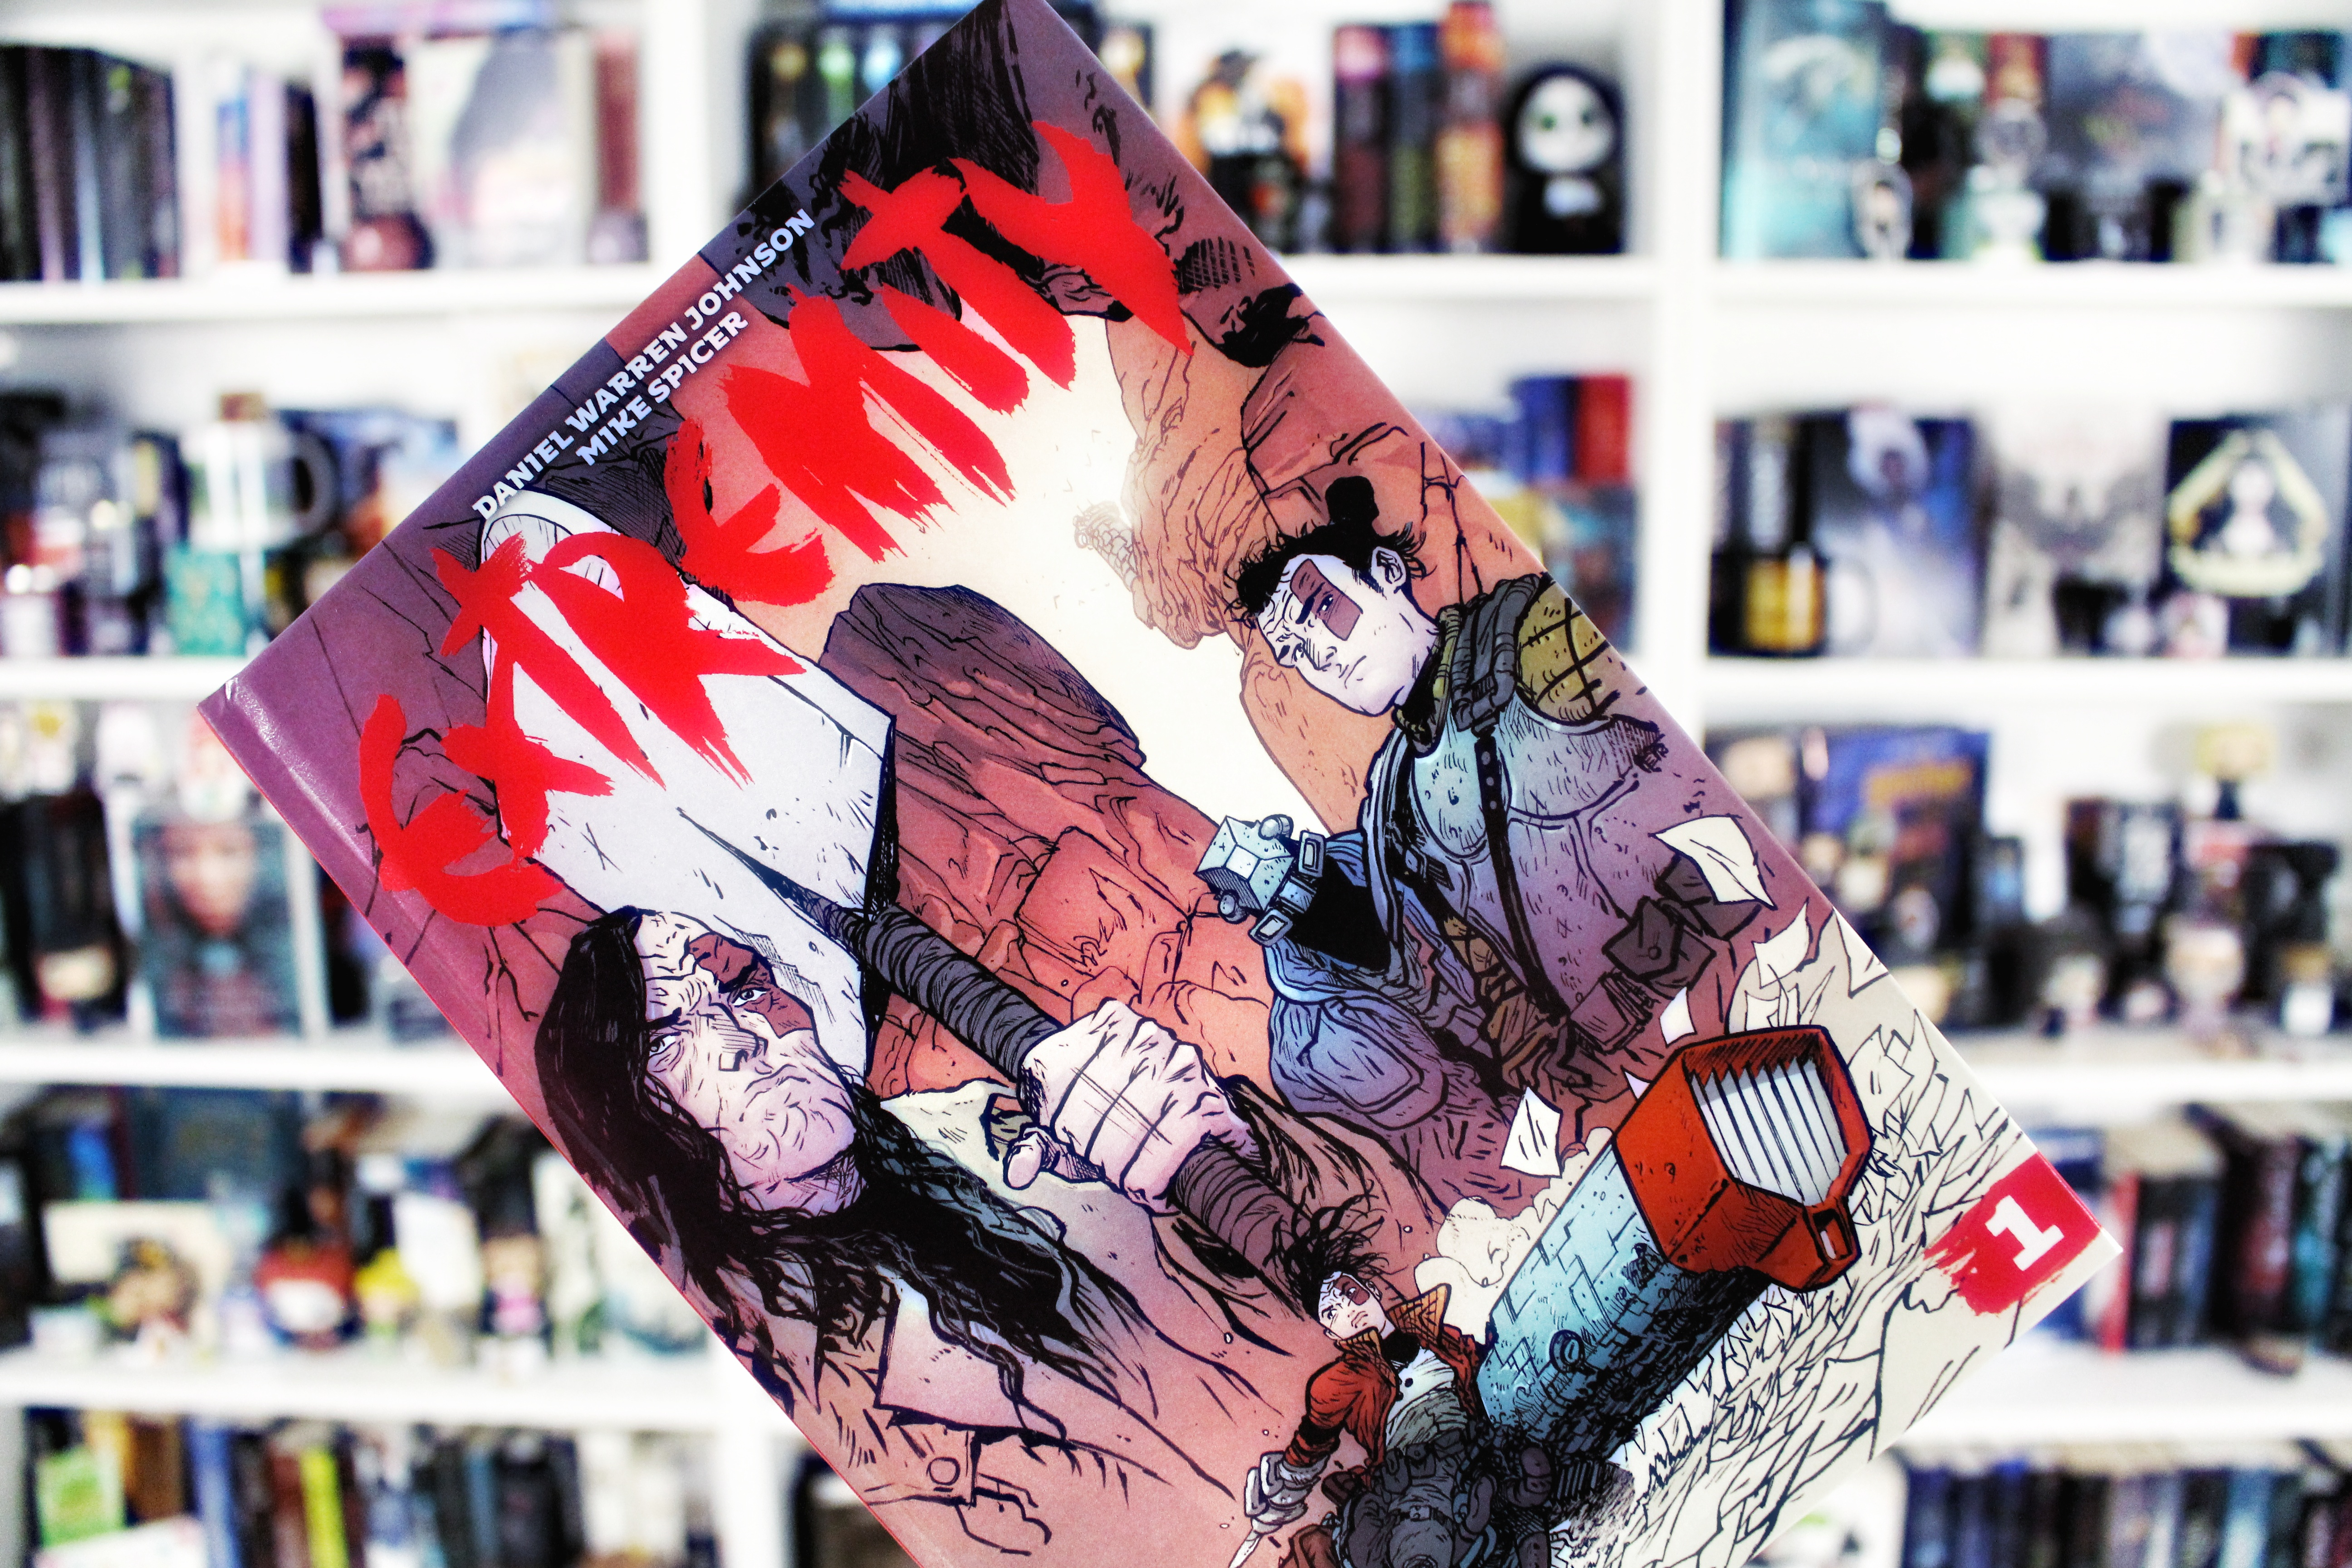 Rezension | Extremity 1 von Daniel Warren Johnson & Mike Spicer